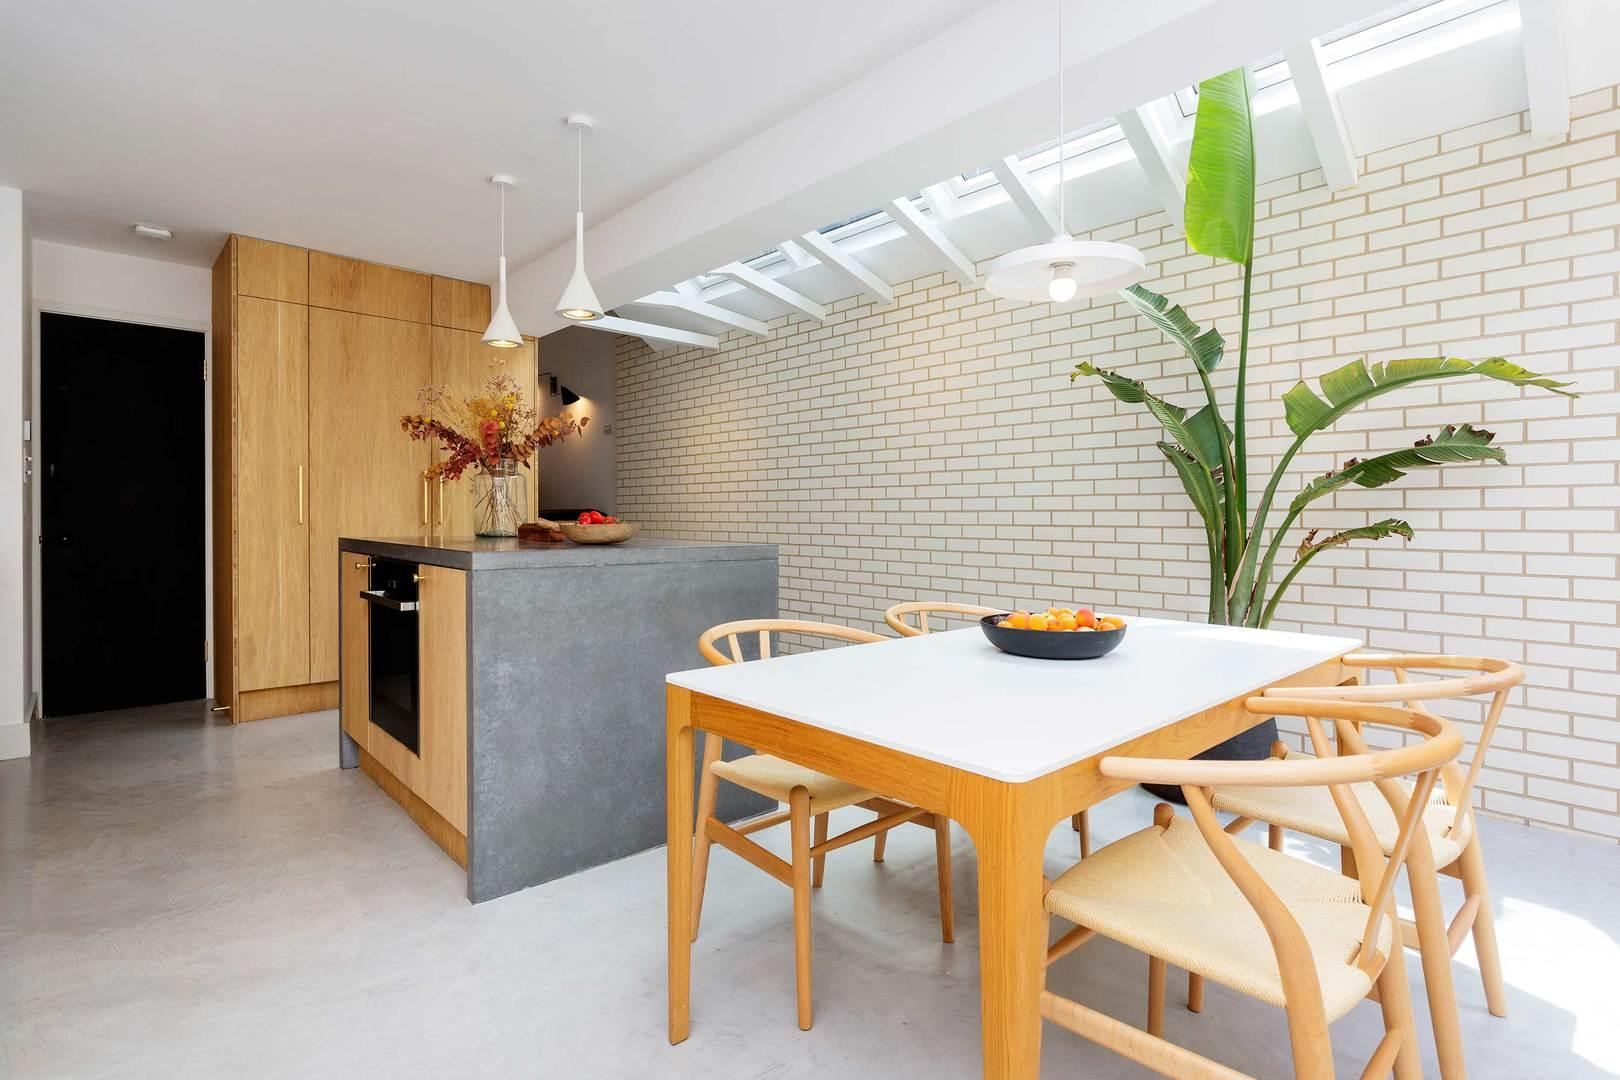 Property Image 2 - Chic Contemporary Islington Home with Luscious Garden